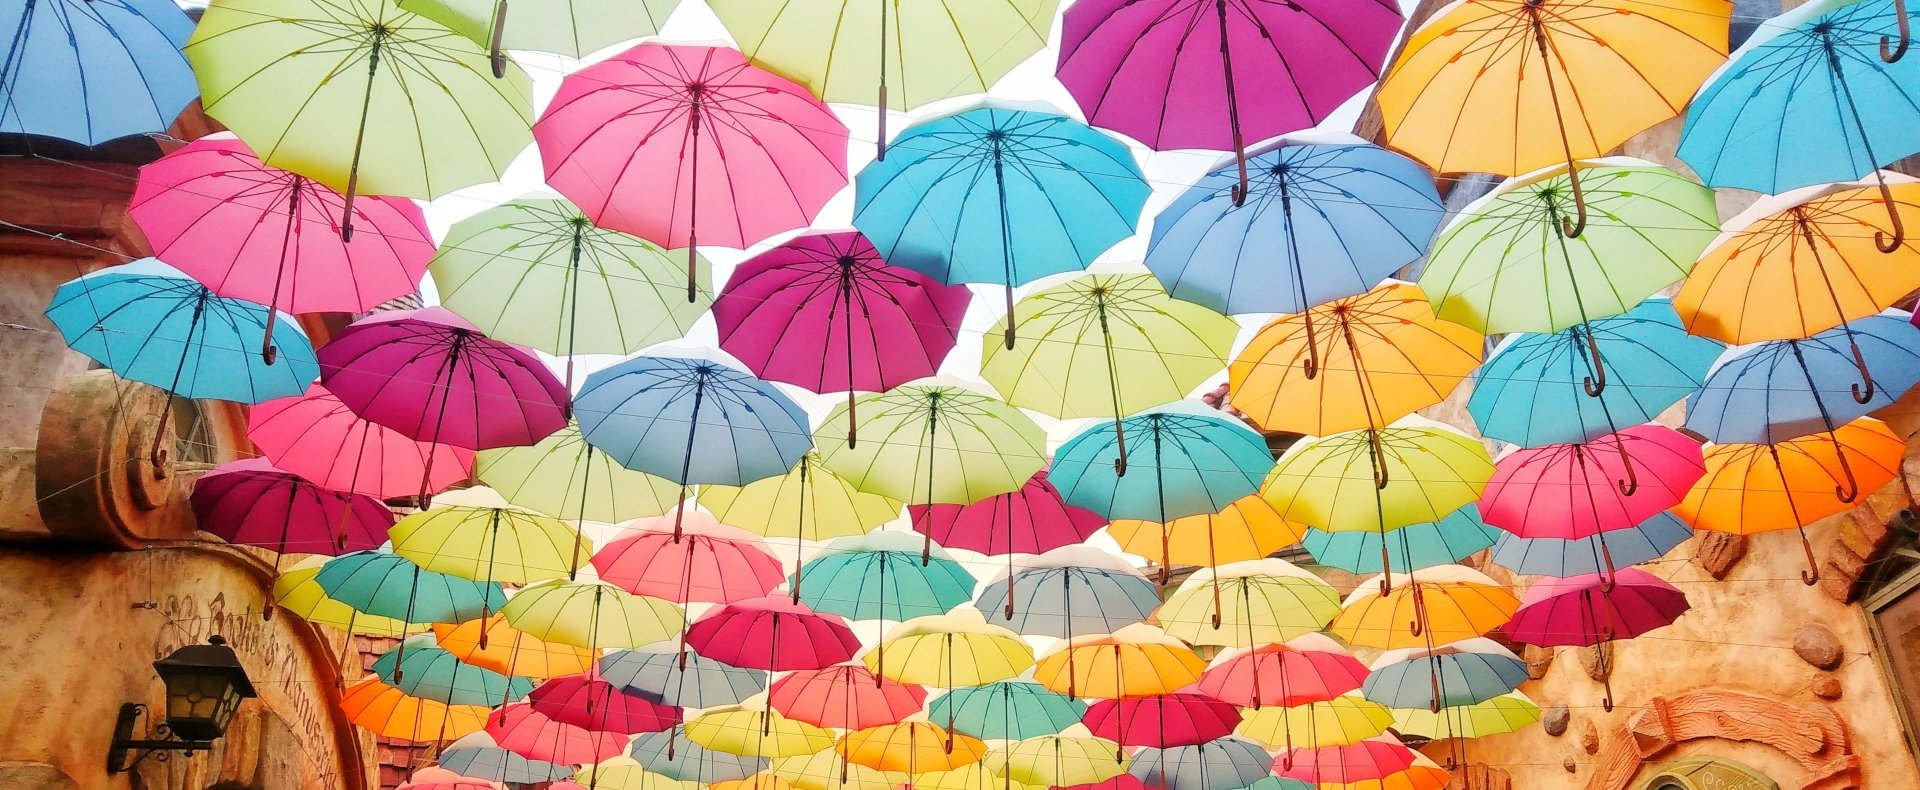 Colorful umbrellas, South Korea